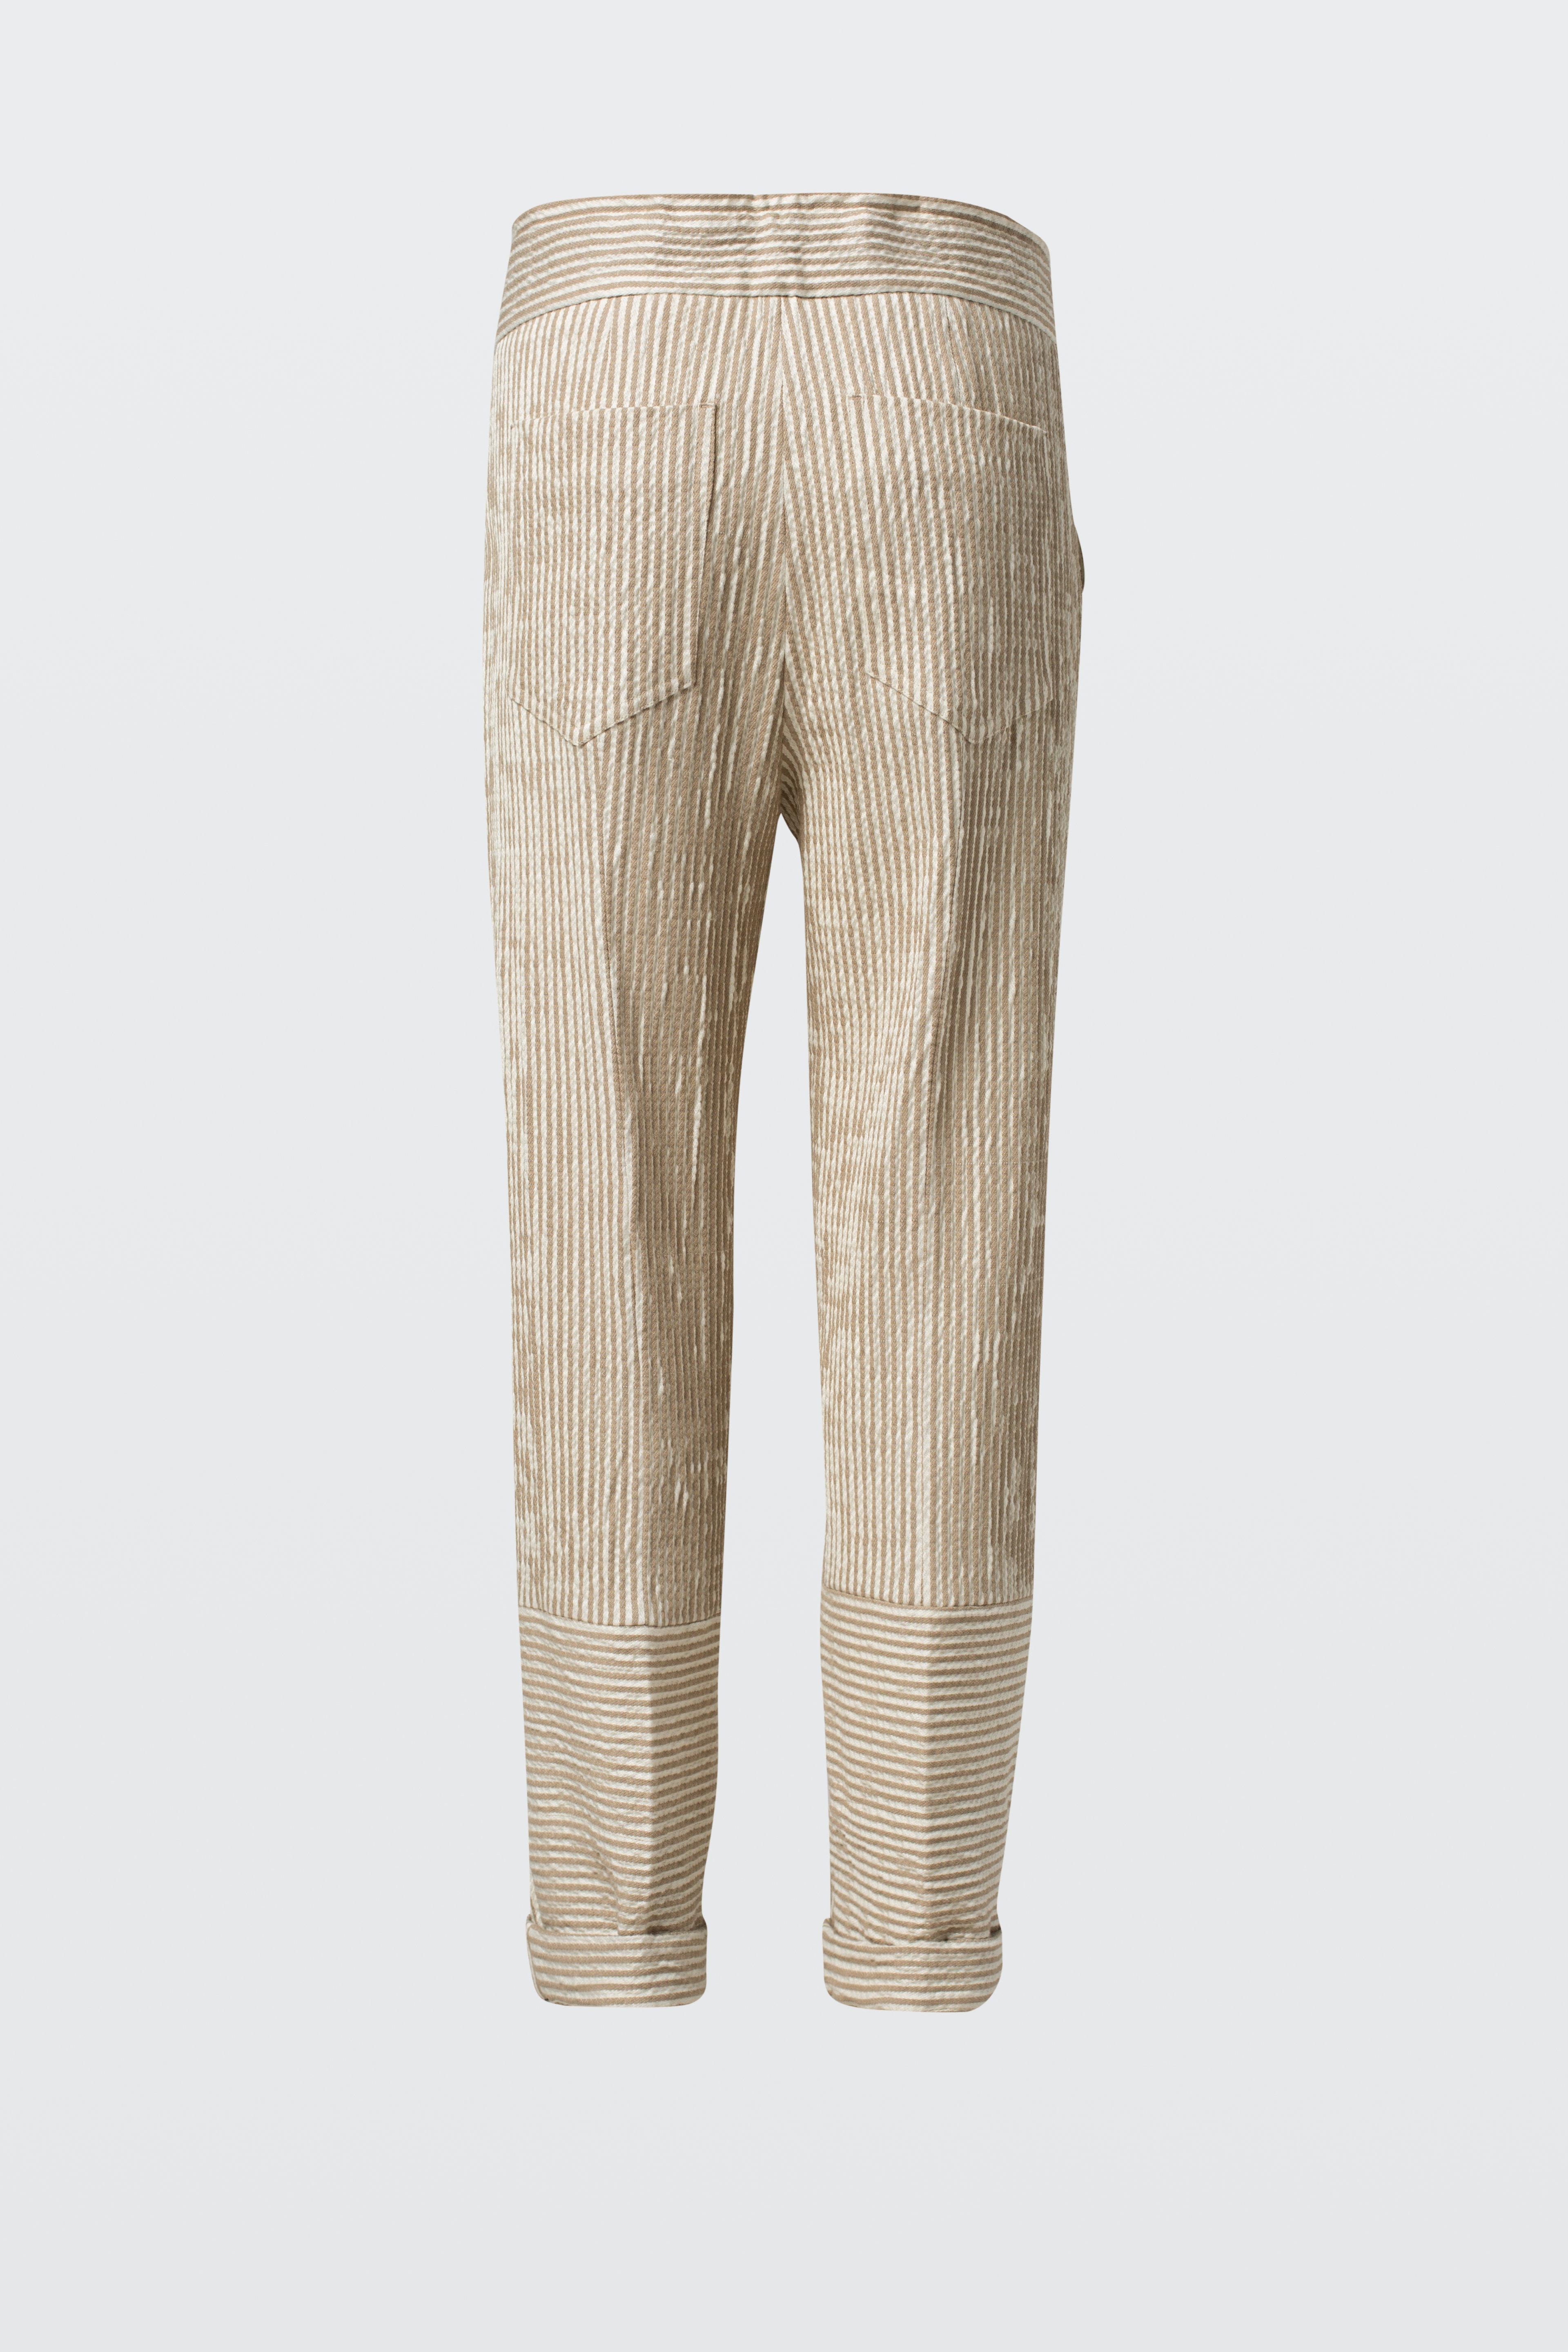 MOVING FORWARD pants 0 Dorothee Schumacher dndkIPqlOP